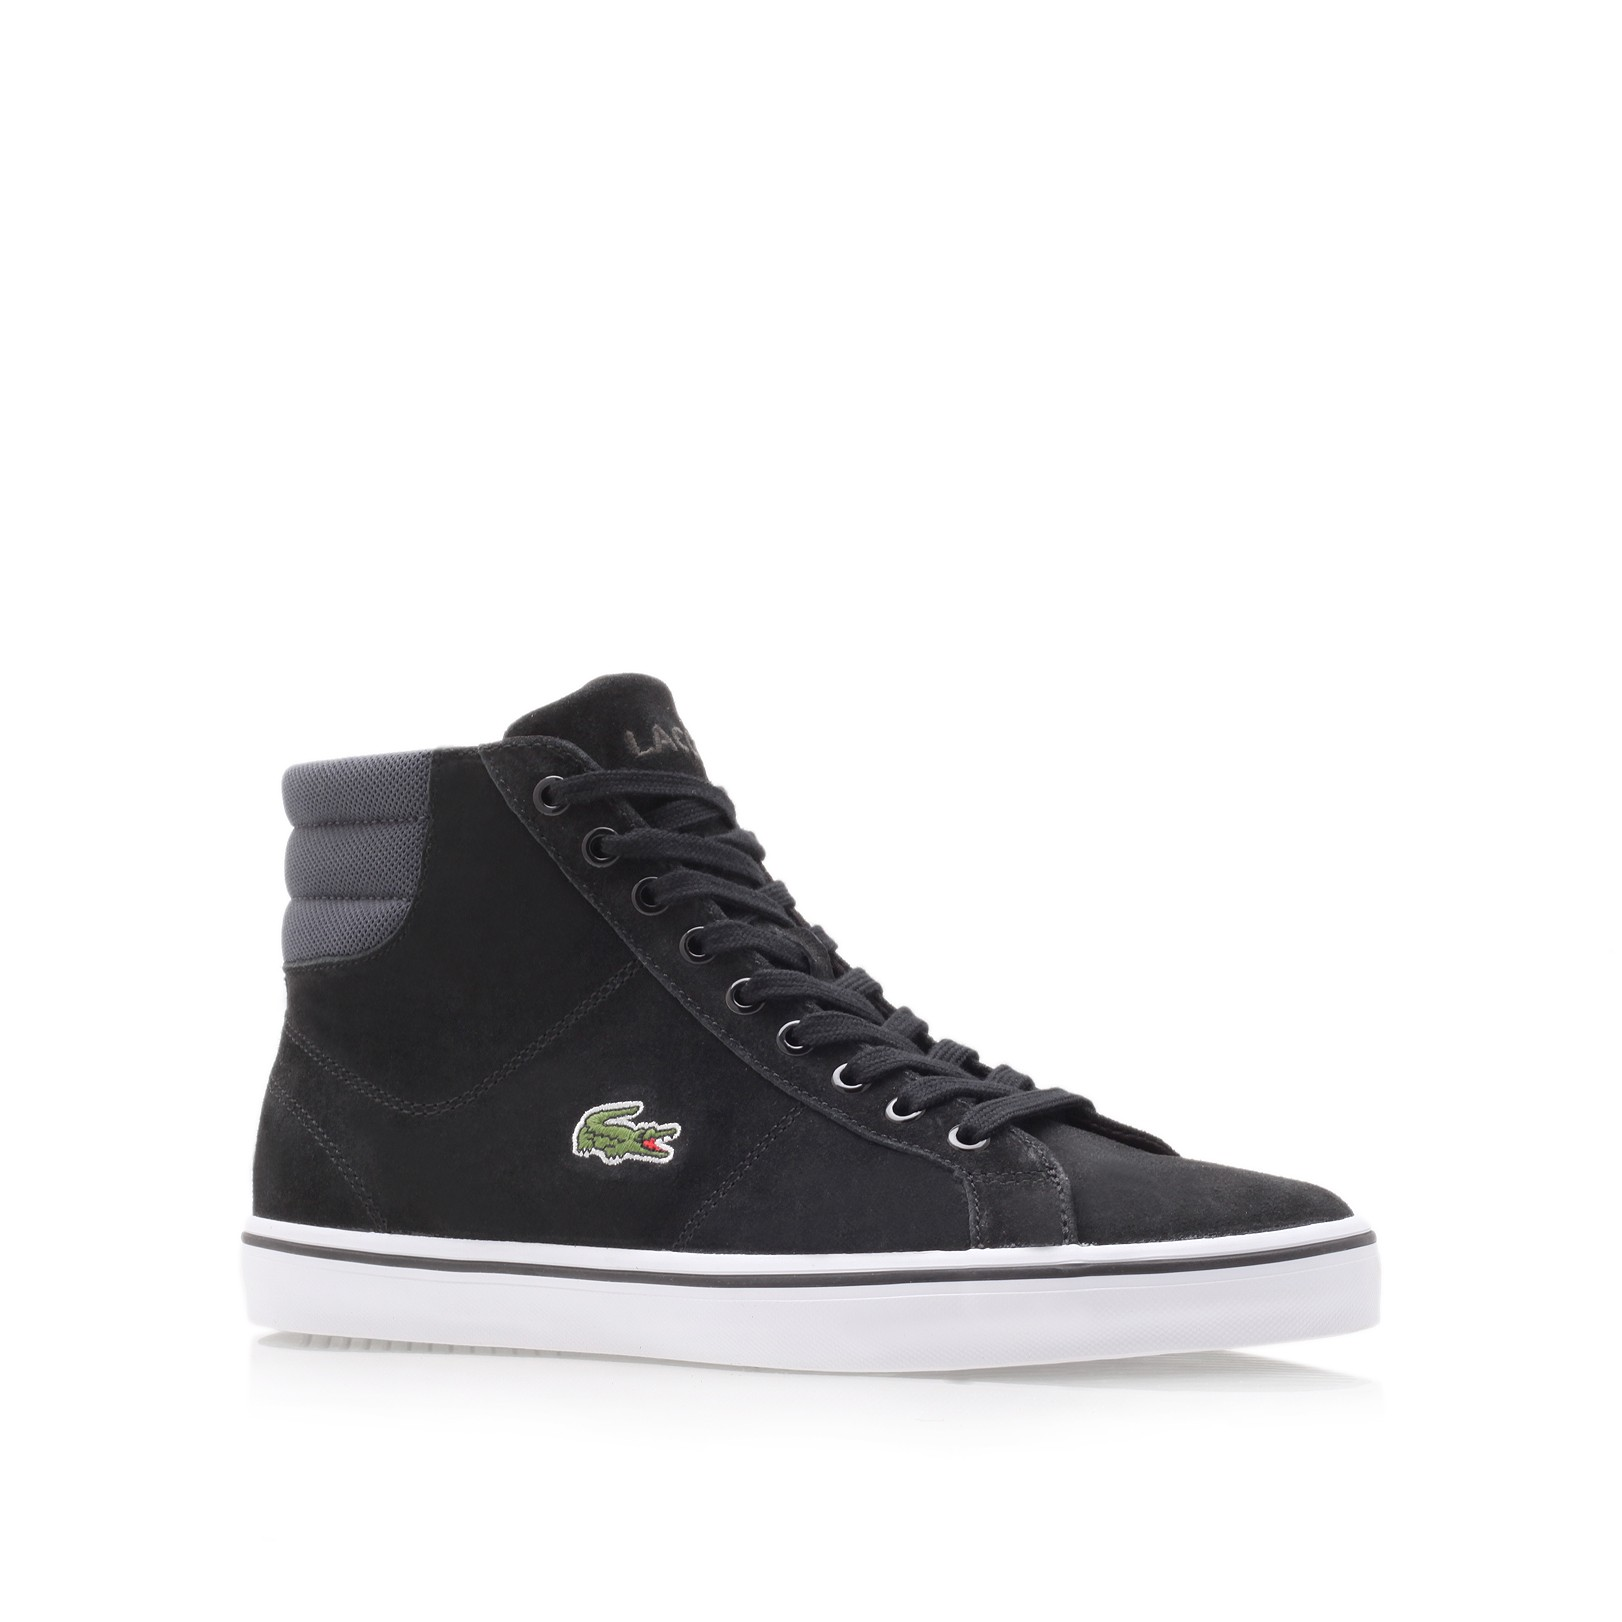 342f36f5f96123 ... lacoste black formal shoes ...